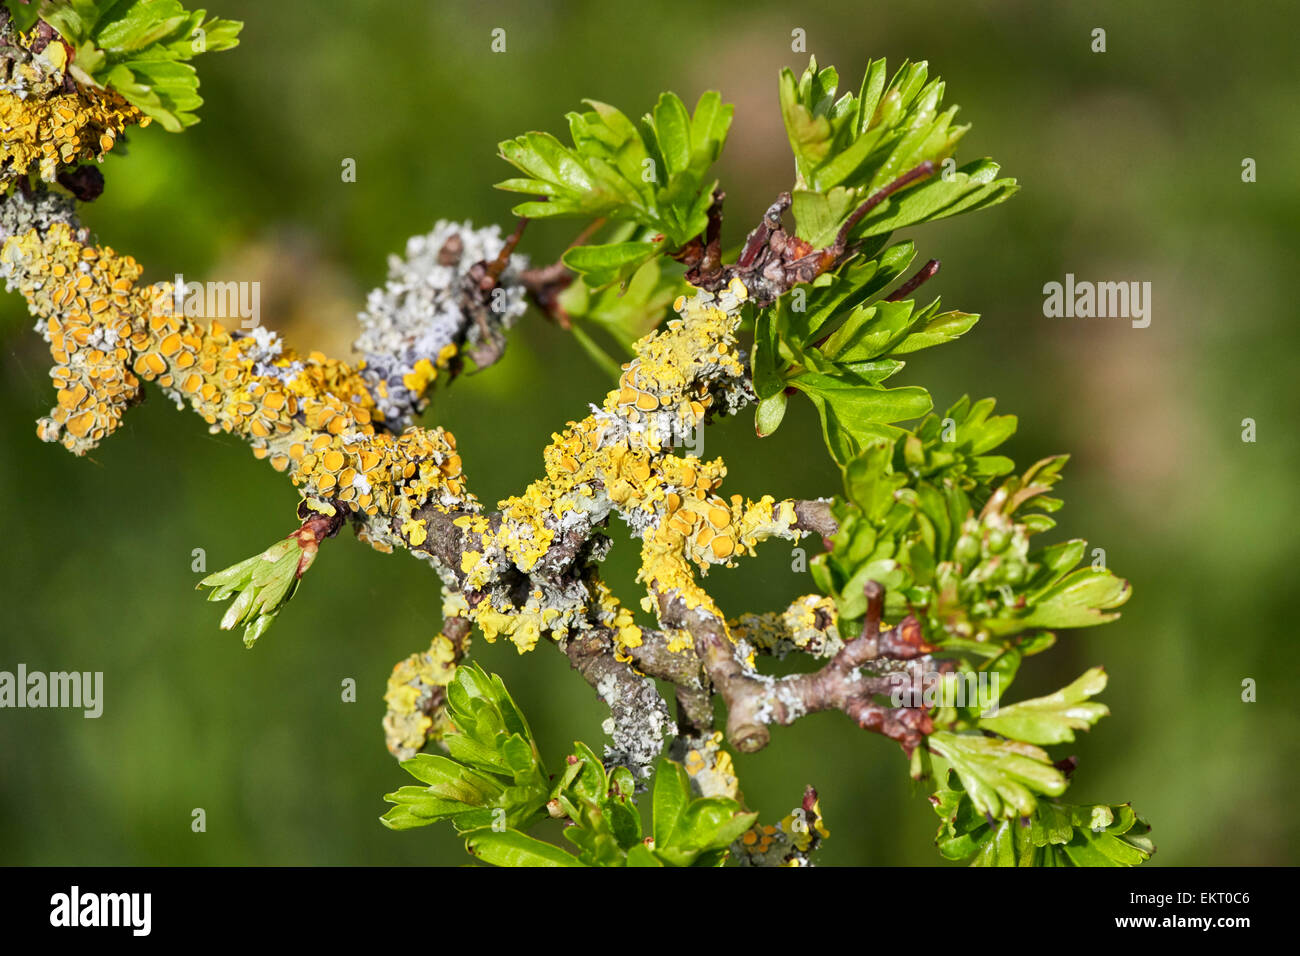 Spring leaves on an old lichen-covered Hawthorn tree.  Hurst Meadows, West Molesey, Surrey, England. - Stock Image